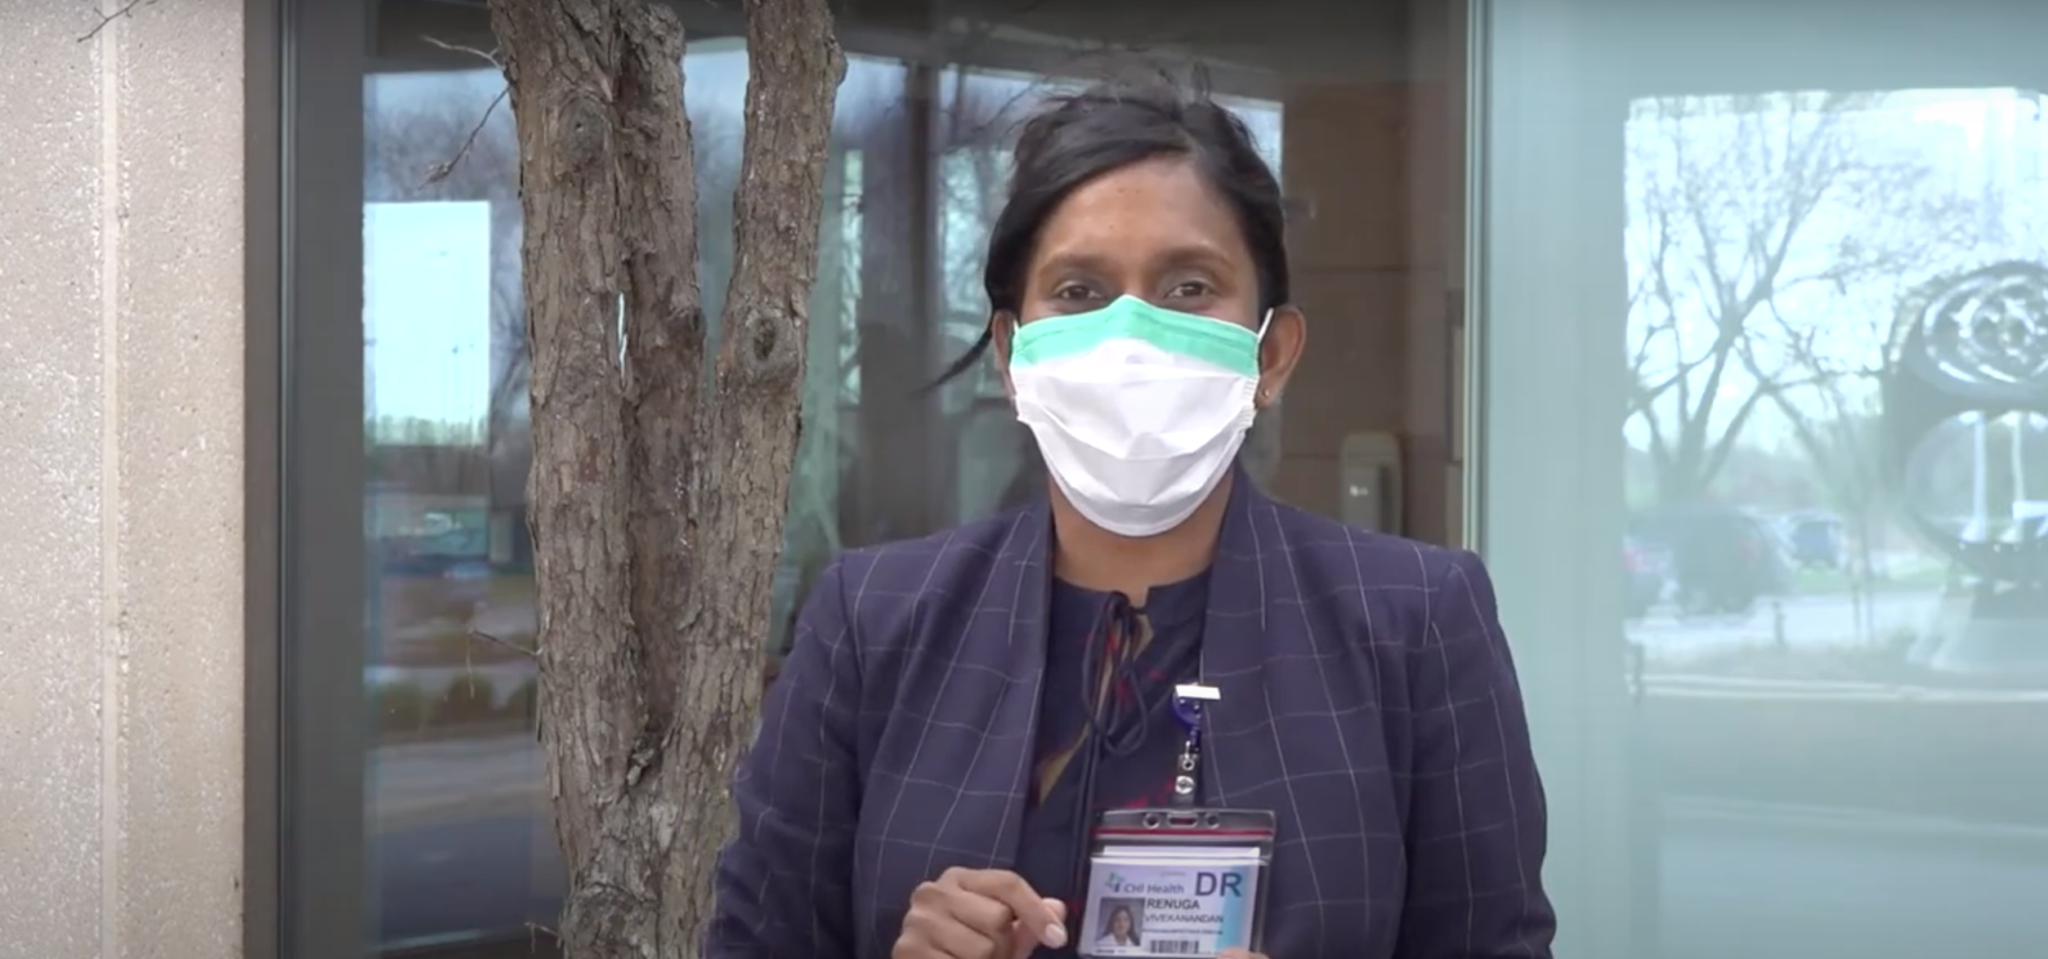 Dr. V demonstrating how to properly wear a mask